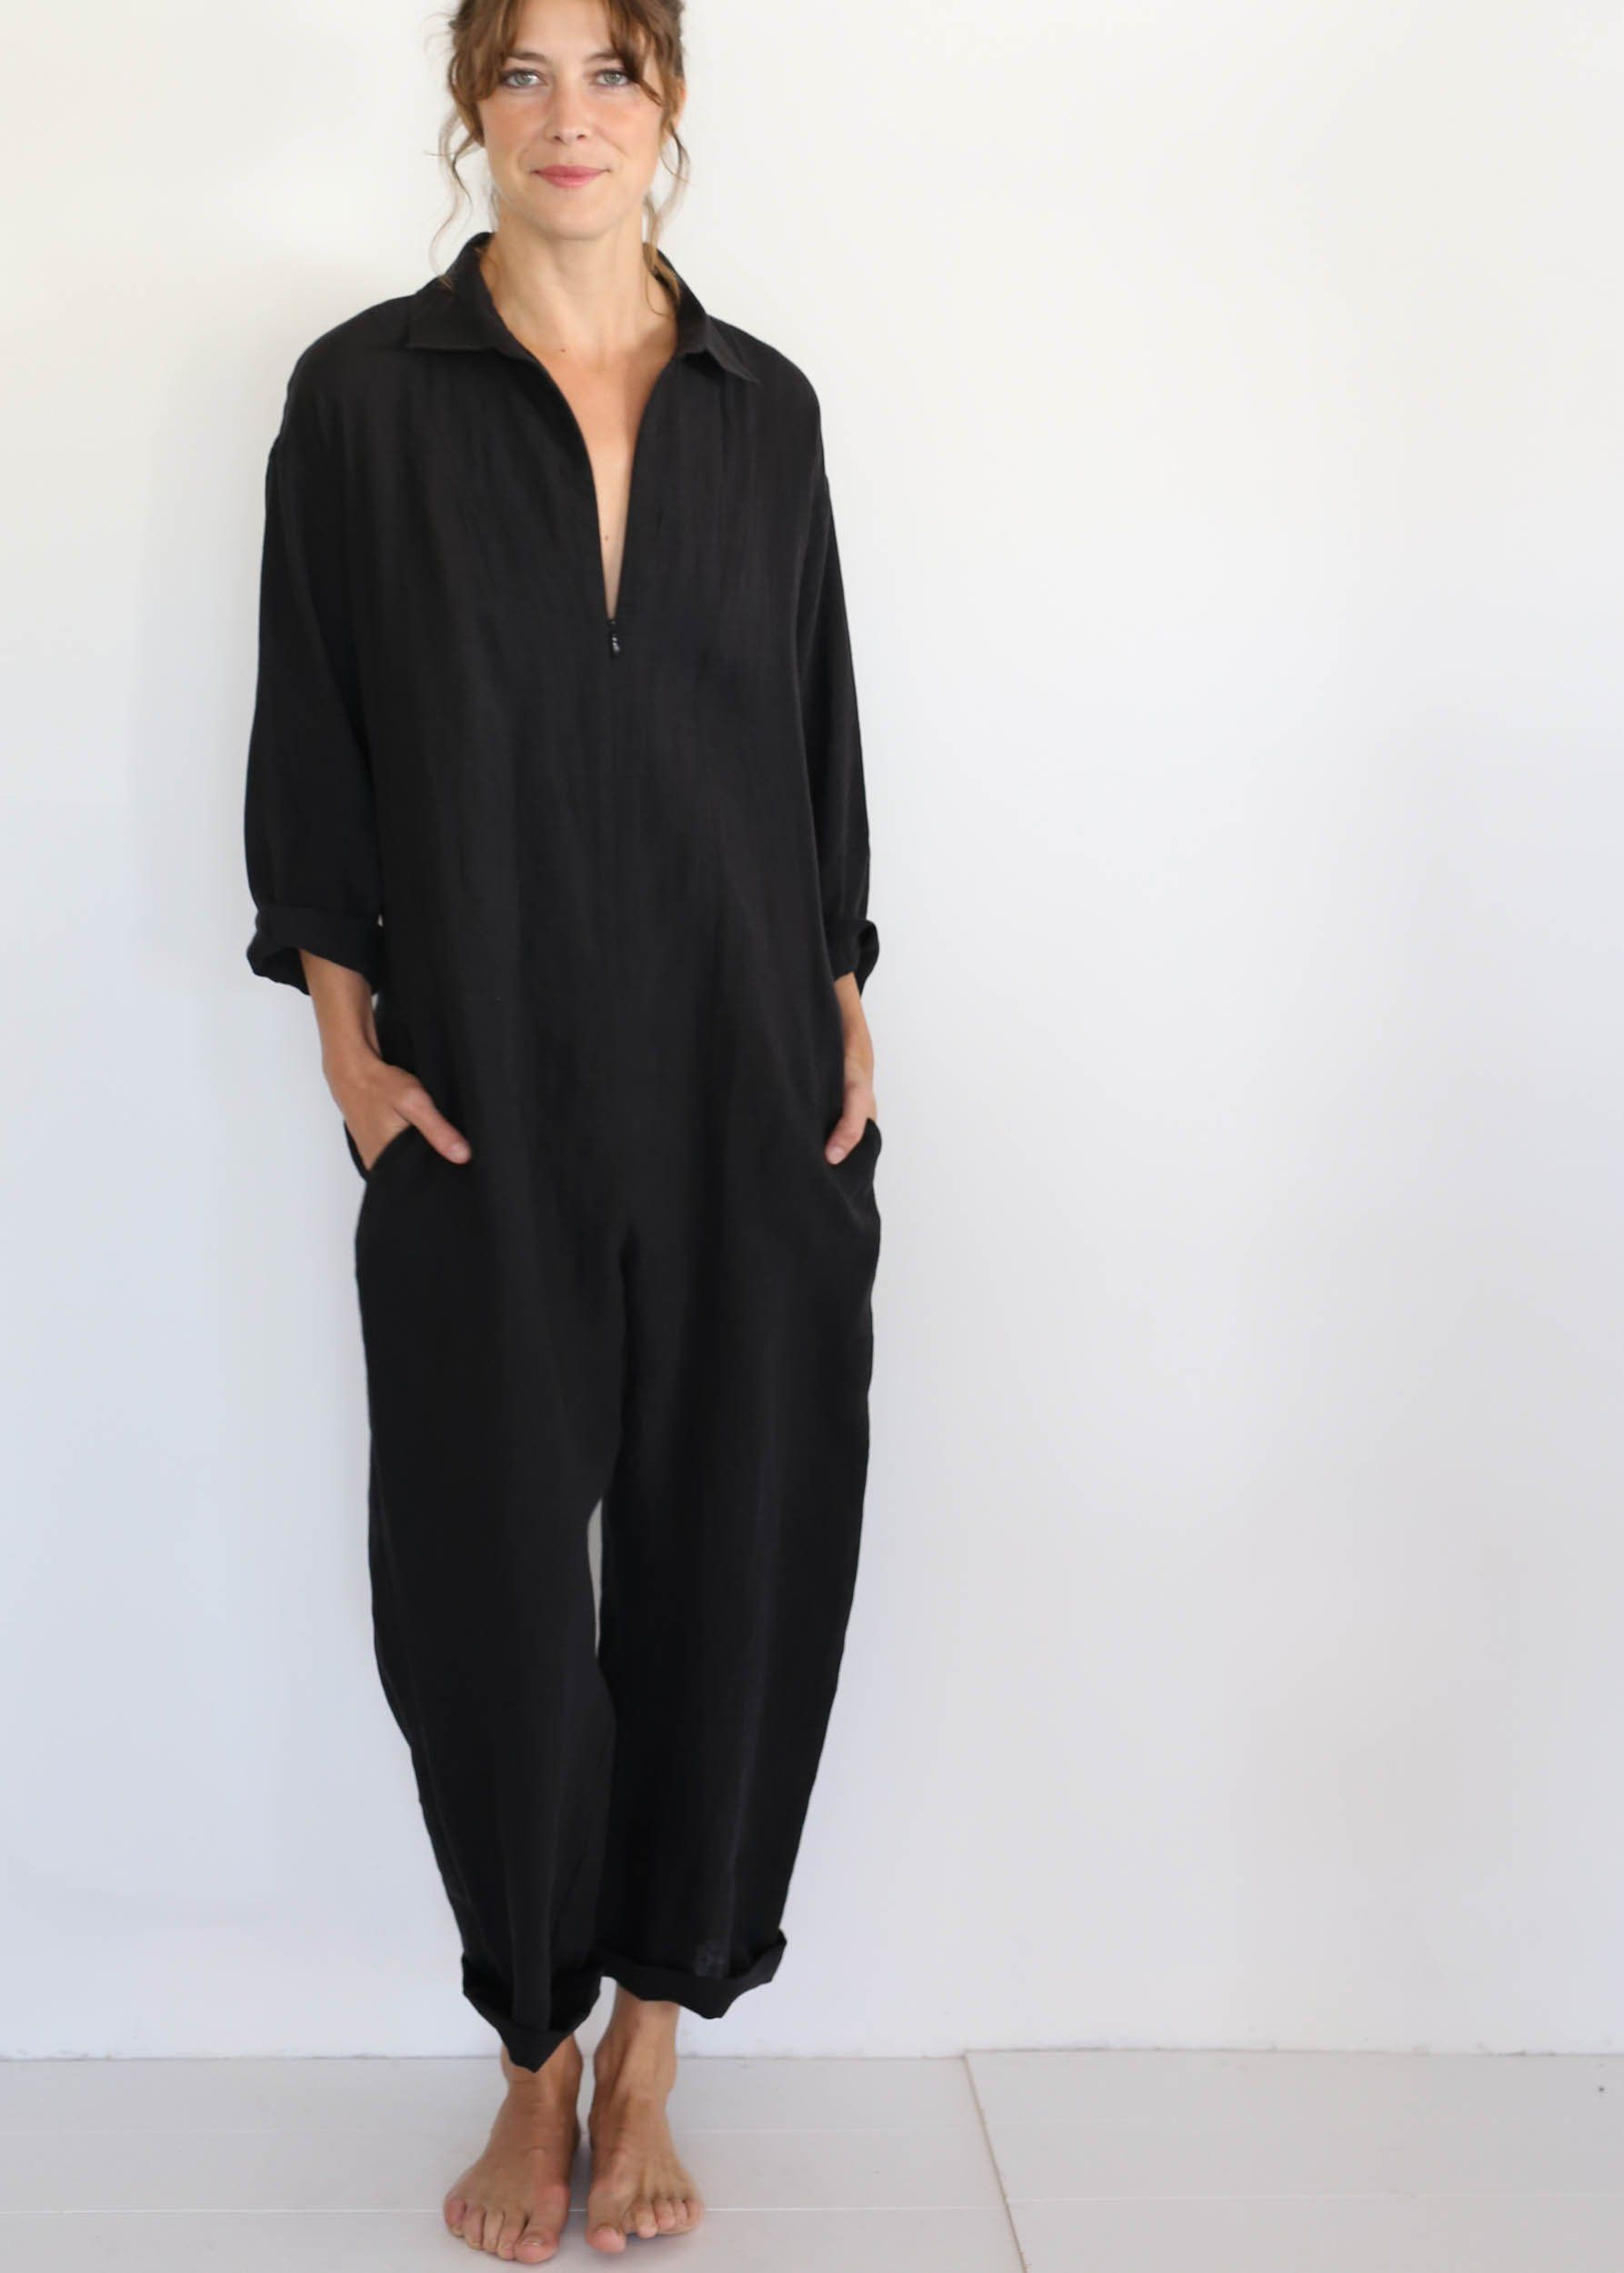 ffb9af107638 Image result for Beatrice Valenzuela - Picasso Jumpsuit - Black ...